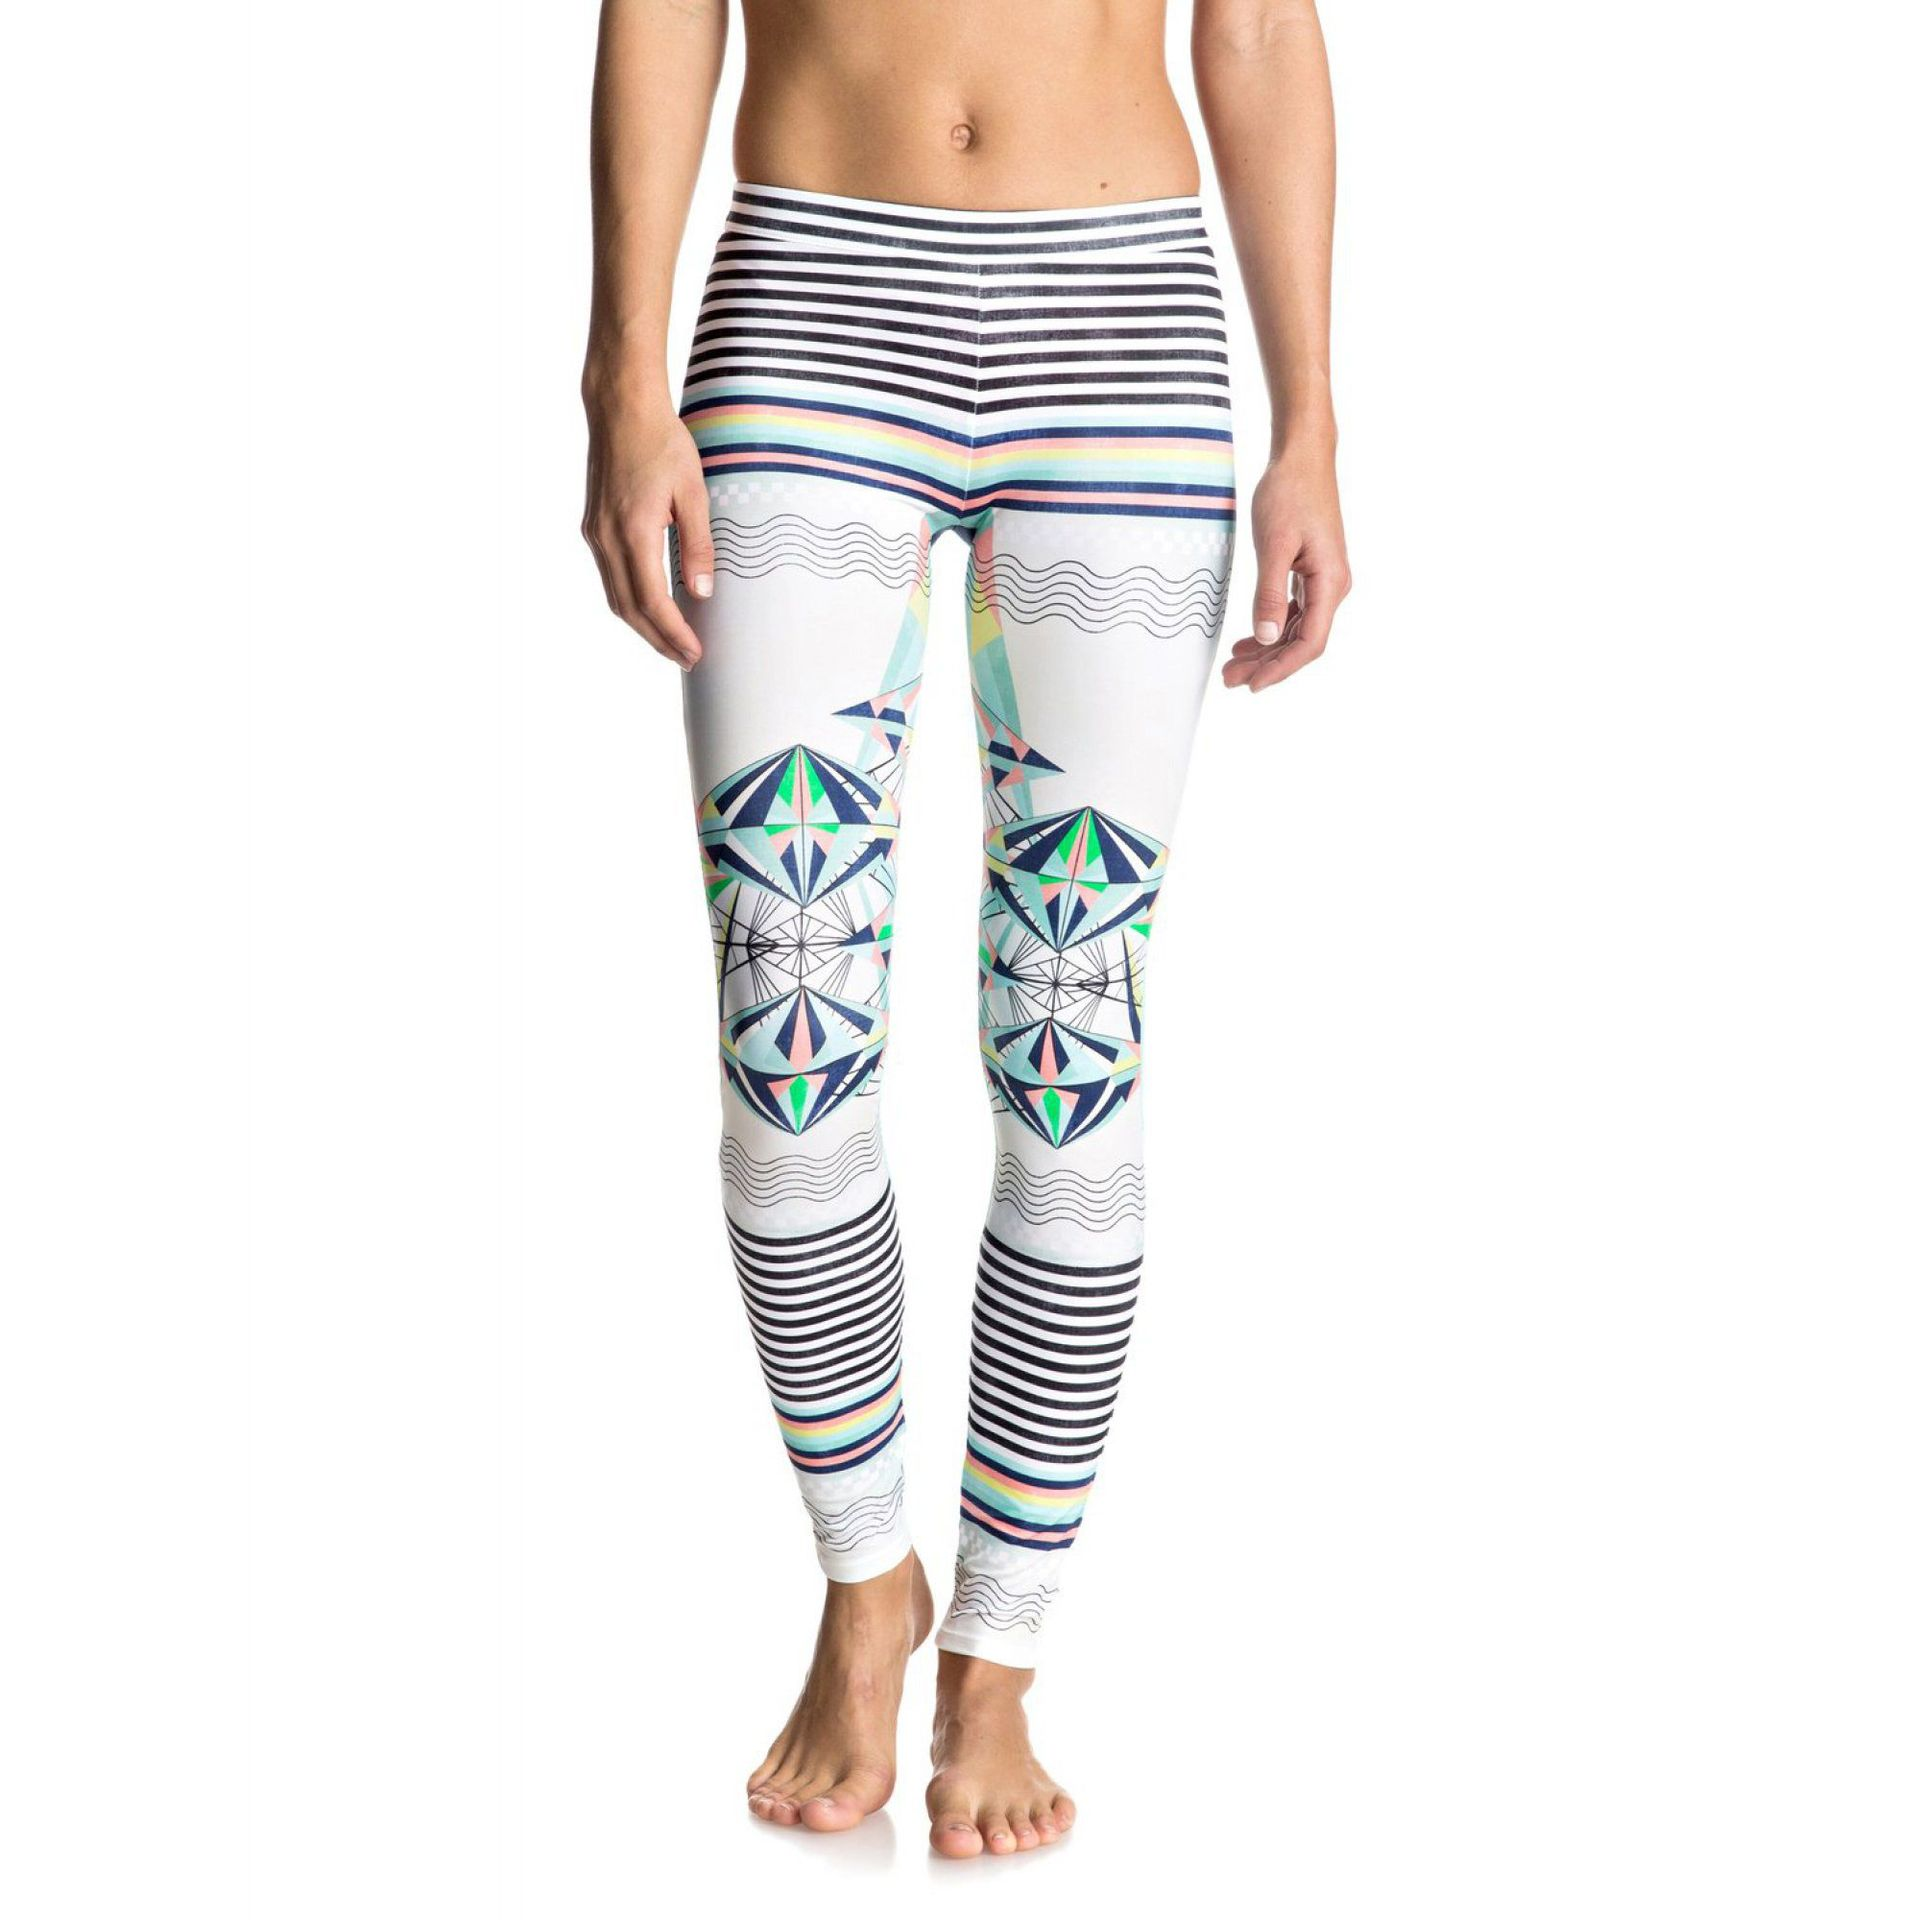 LEGINSY ROXY KEEP IT ROXY SURF LEGGING WBT6 1